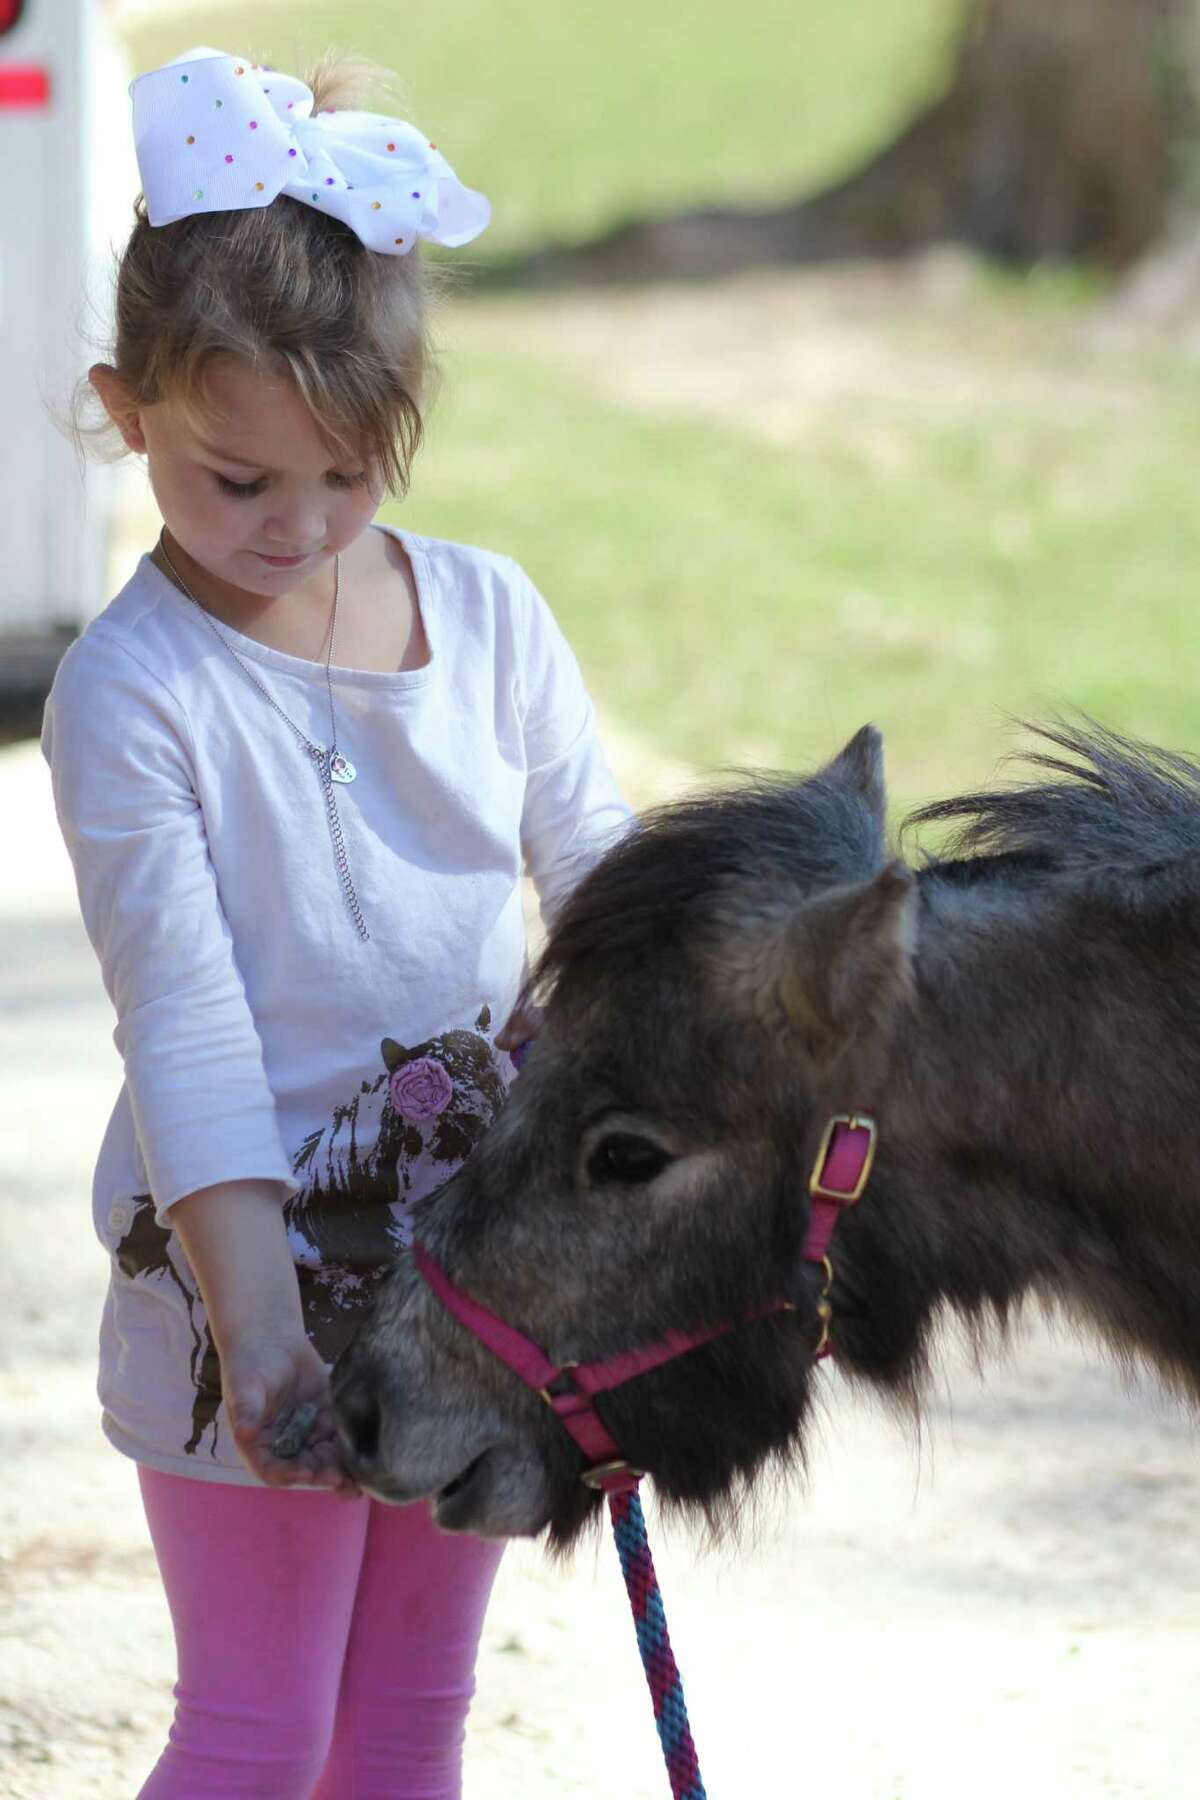 Rylee Brett of Hull feeds treats to her miniature horse Chicken Wing shortly after its arrival at the family ranch from New Mexico. A ranch owner in New Mexico donated the horse to Brett after her previous horse, Chicken Nugget, was intentionally killed by an unknown person.